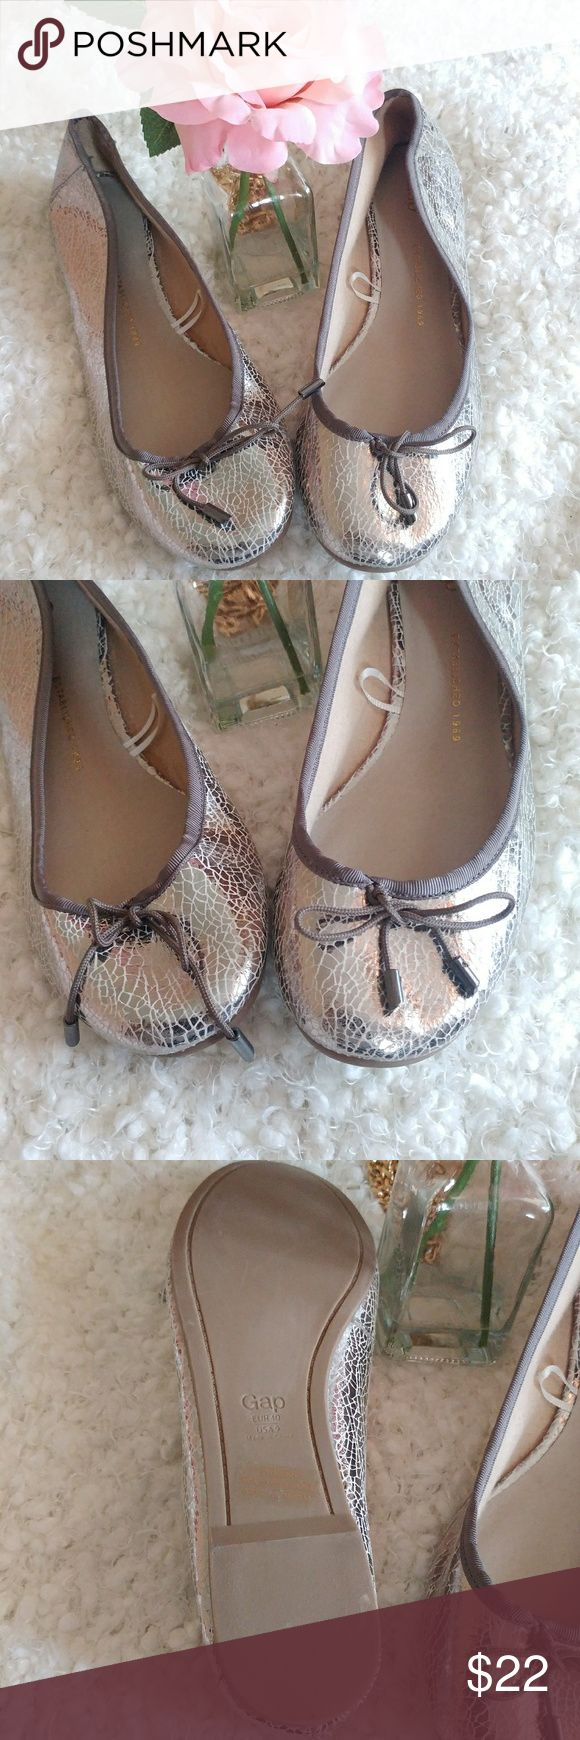 Gap Super Duper Cute Crackles Silvertone Flats Superb condition. No signs of wear. Medium width. Just a great summer shoe. Don't miss out GAP Shoes Flats & Loafers